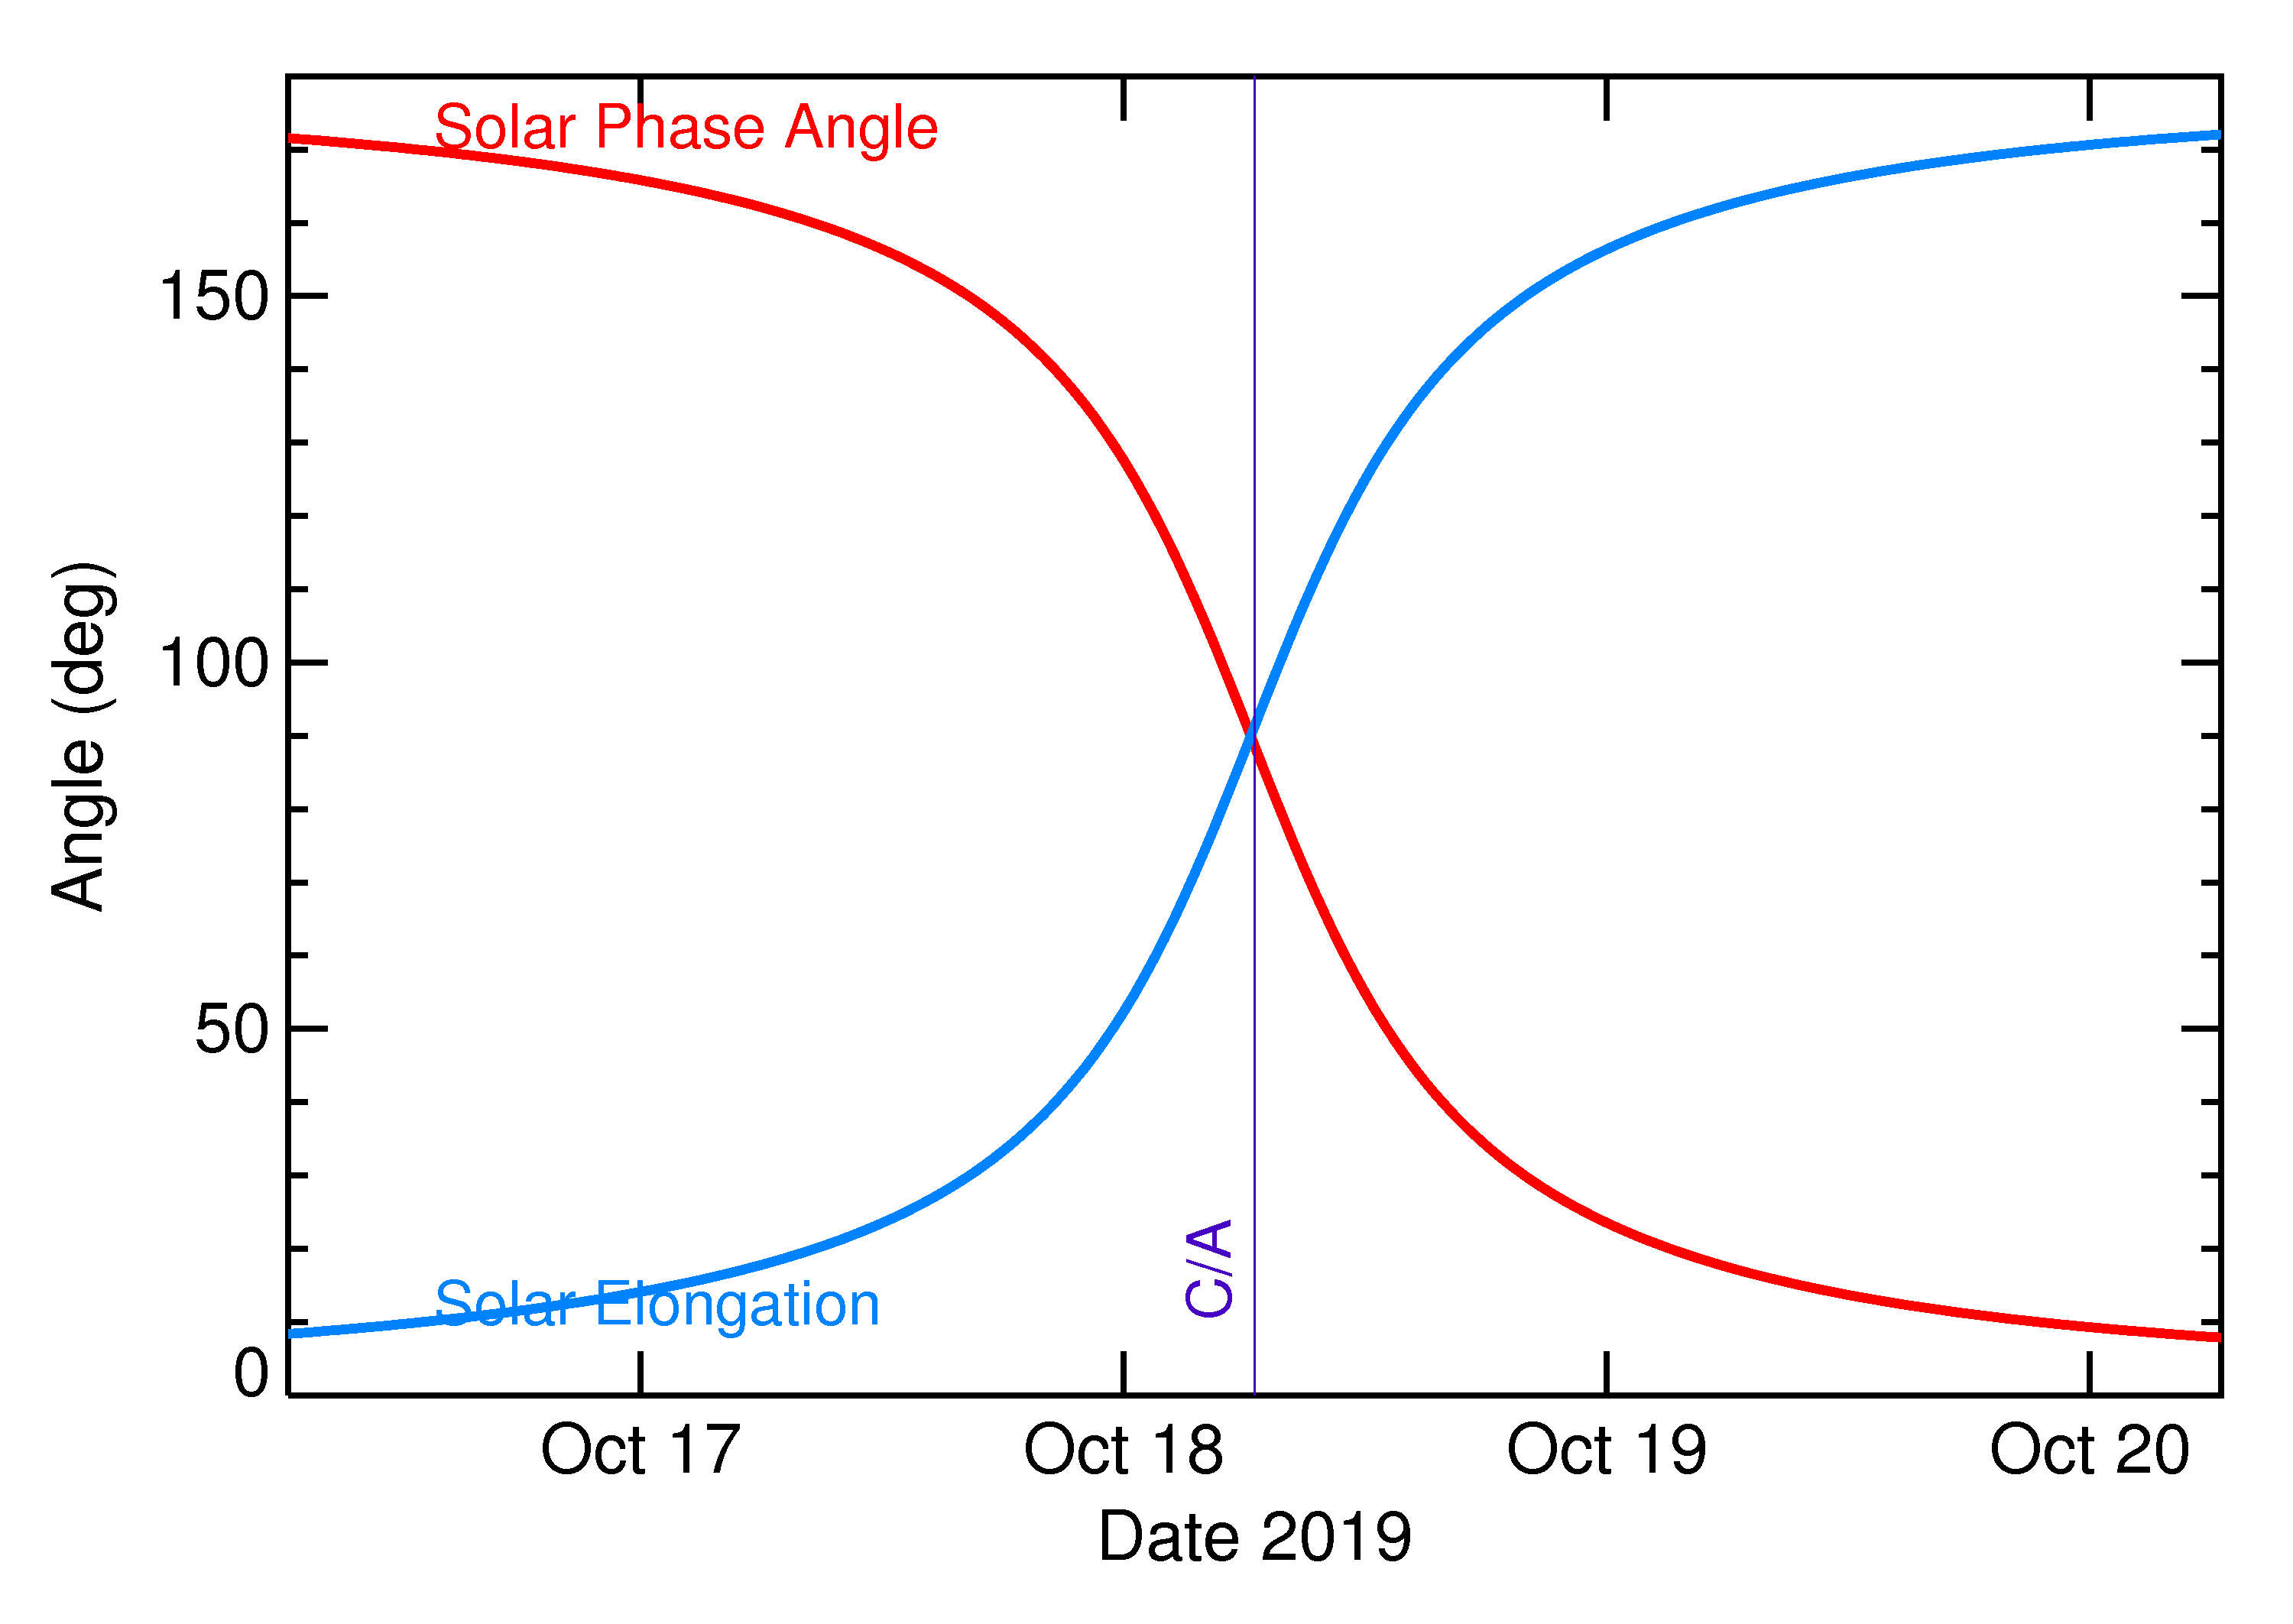 Solar Elongation and Solar Phase Angle of 2019 UU1 in the days around closest approach